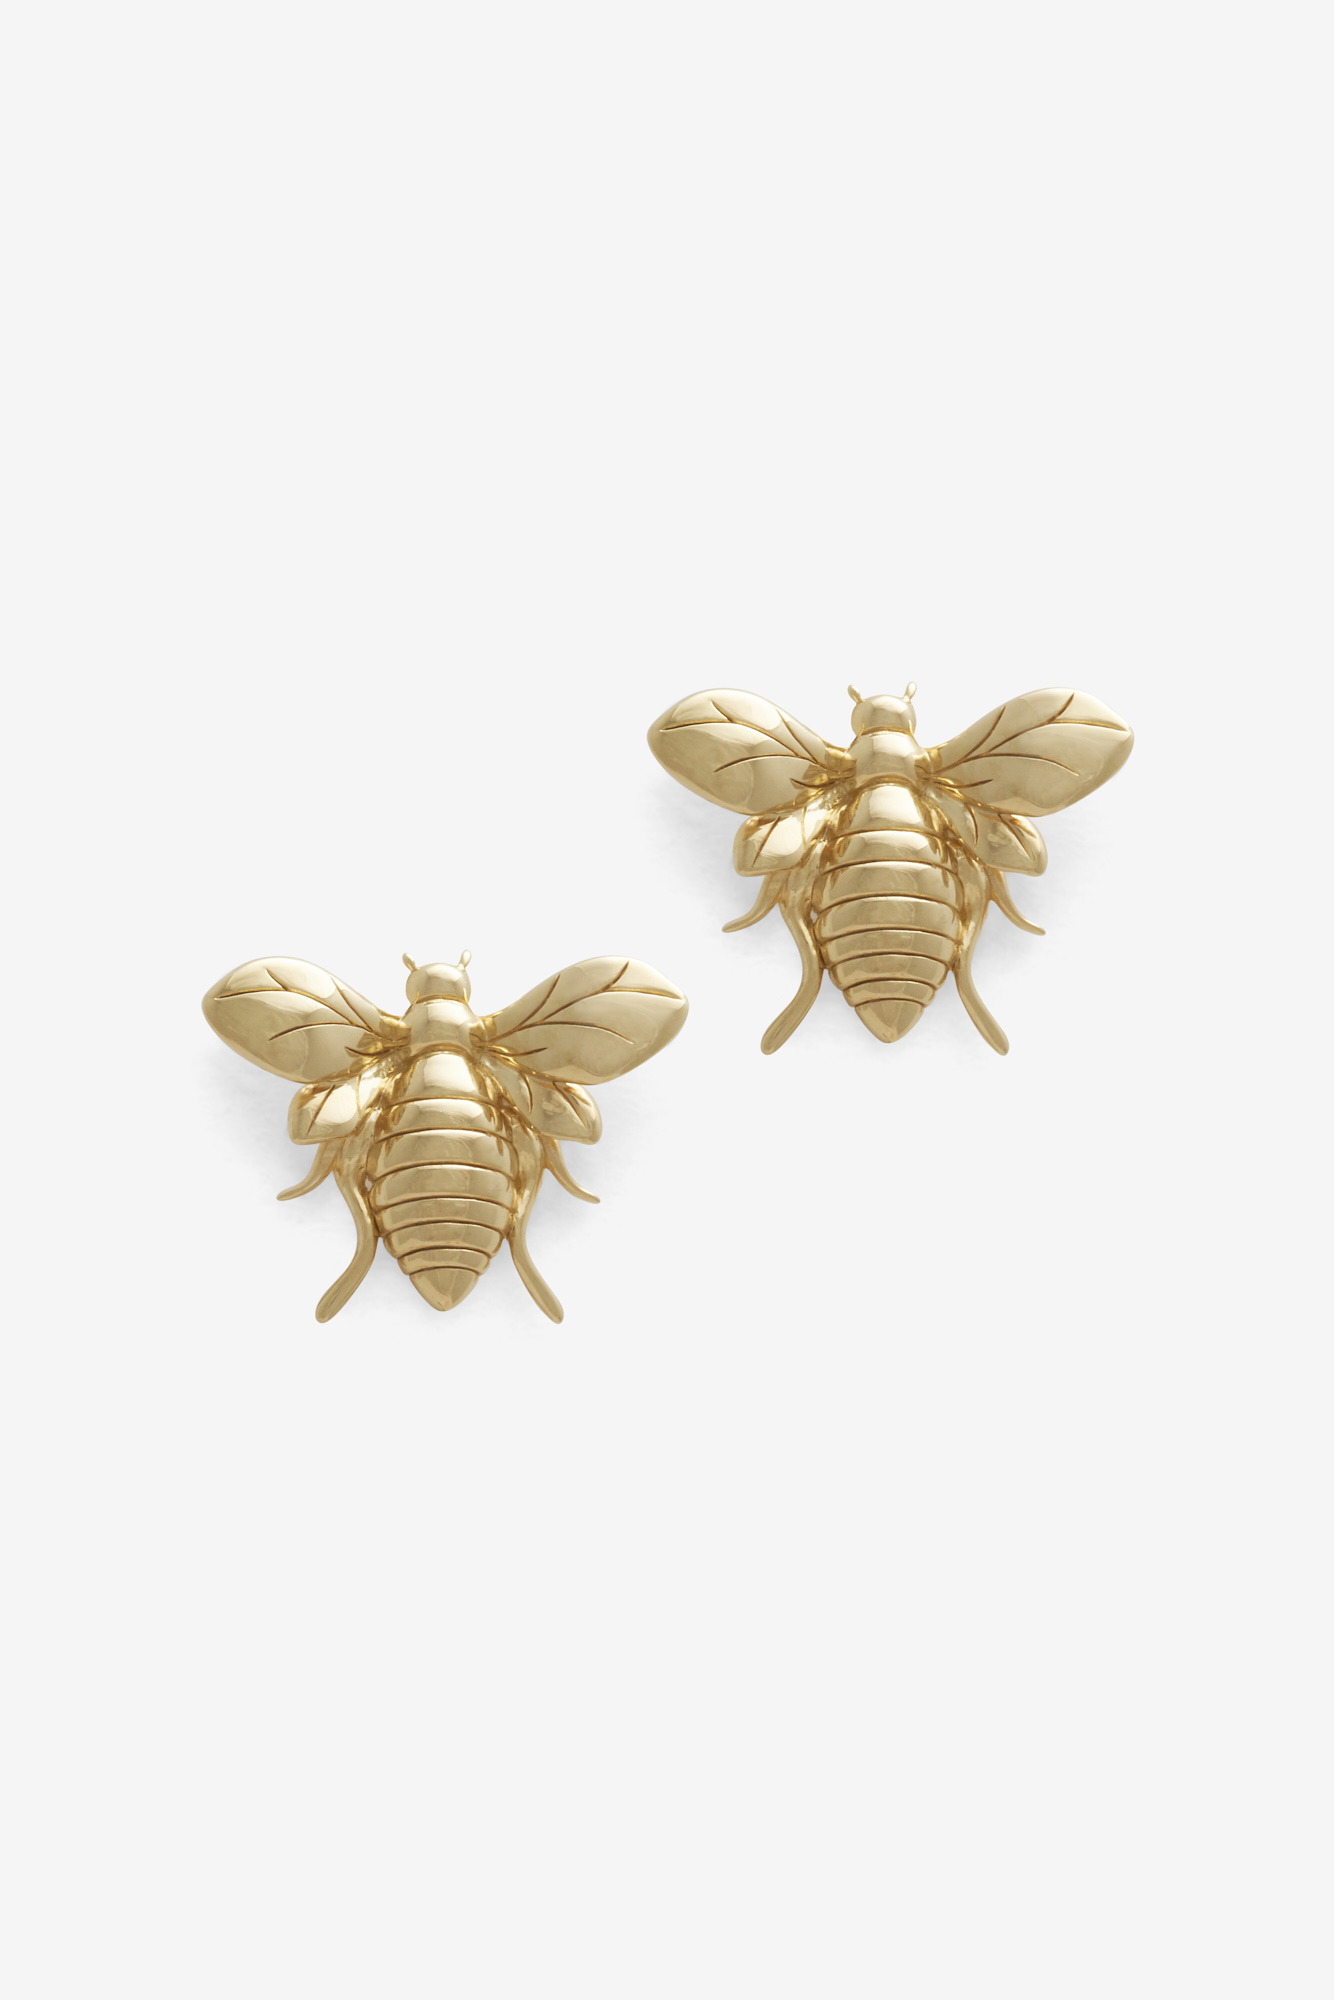 19-03-5-1-001-113-09_Bee Earring_Gold Plated_03